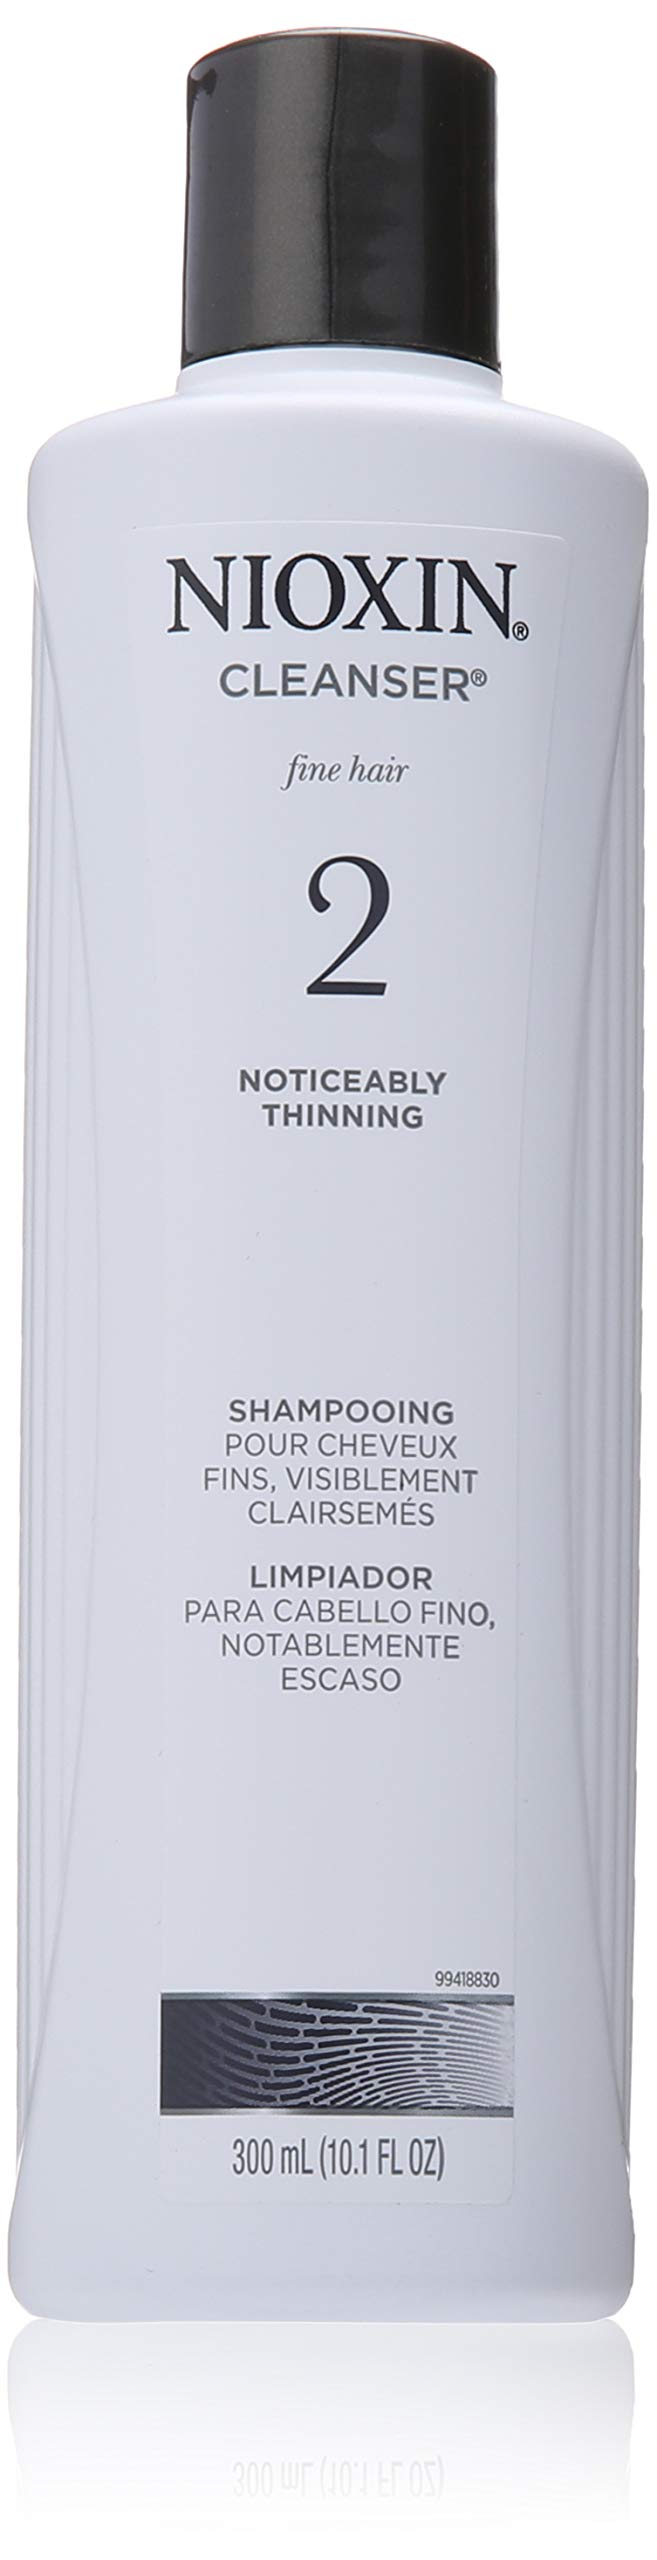 Nioxin Cleanser Shampoo System 2 for Fine Hair with Progressed Thinning, 10.1 Ounce by Nioxin